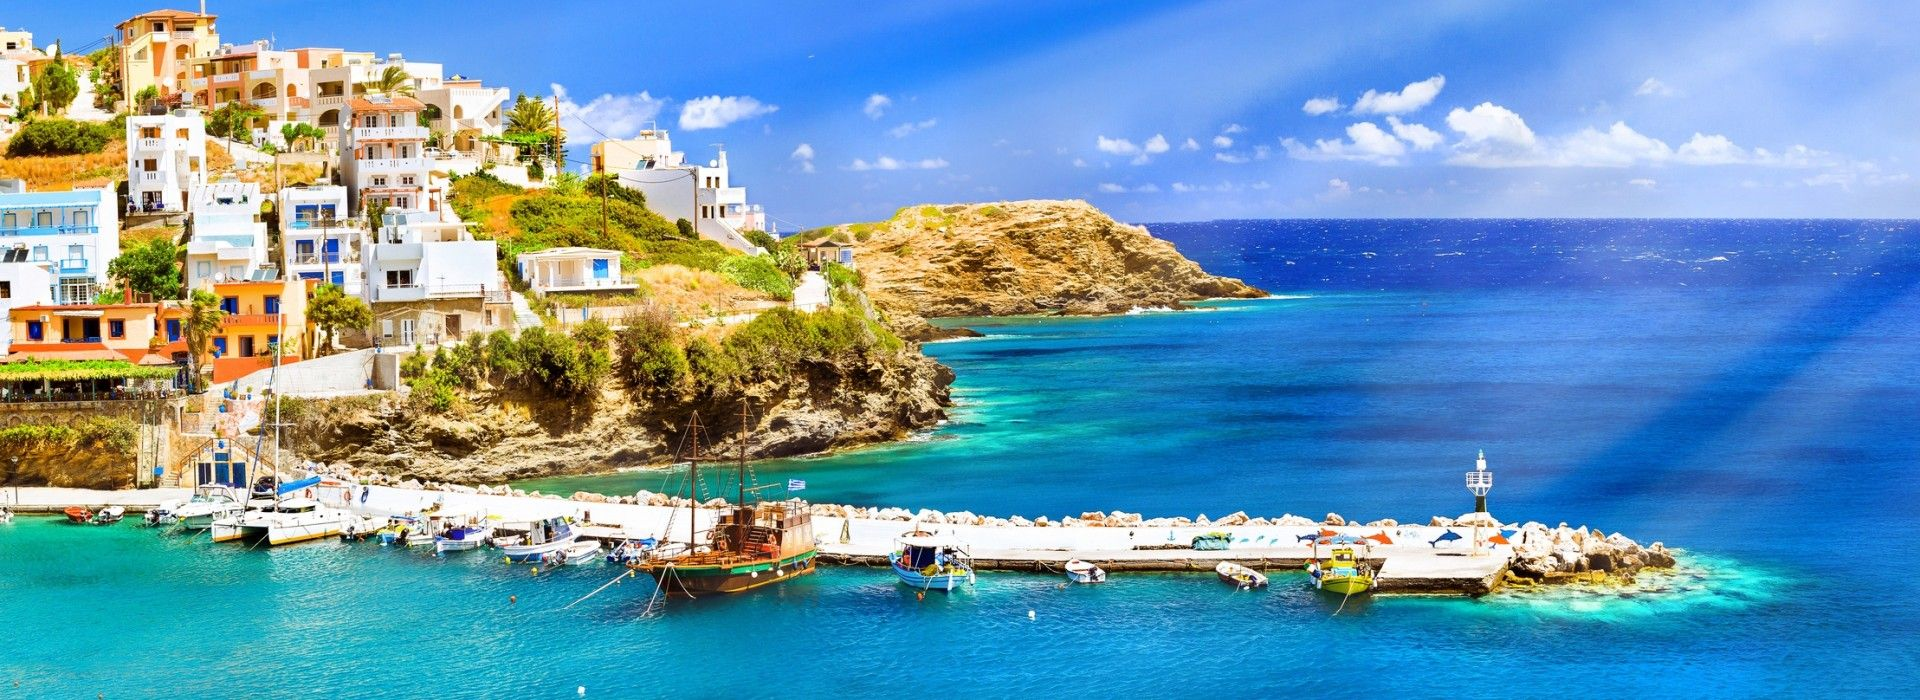 Boat tours, water sports and marine wildlife in Greece